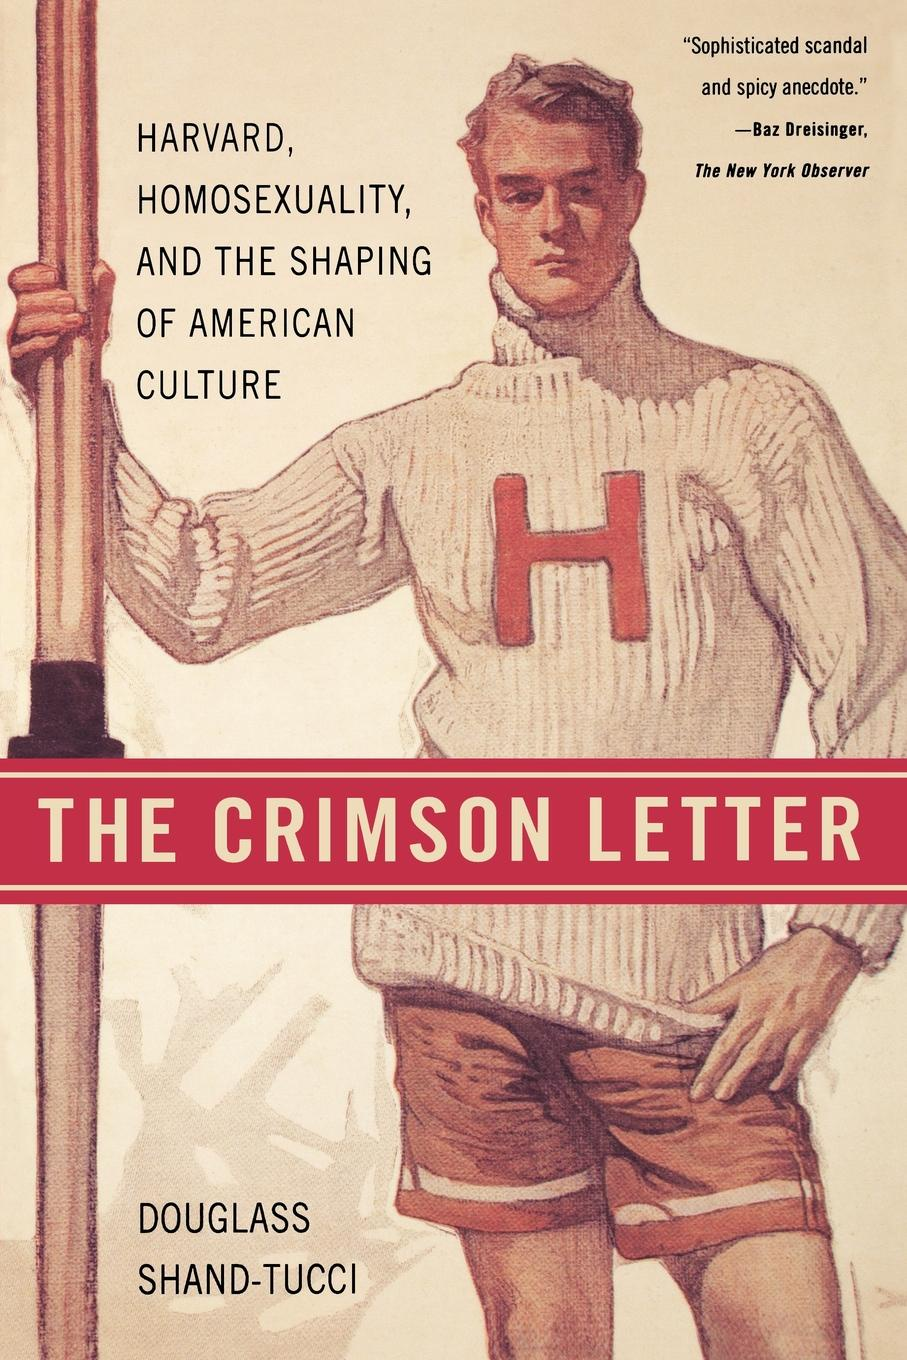 Douglass Shand-Tucci The Crimson Letter. Harvard, Homosexuality, and the Shaping of American Culture triumphs of experience the men of the harvard grant study